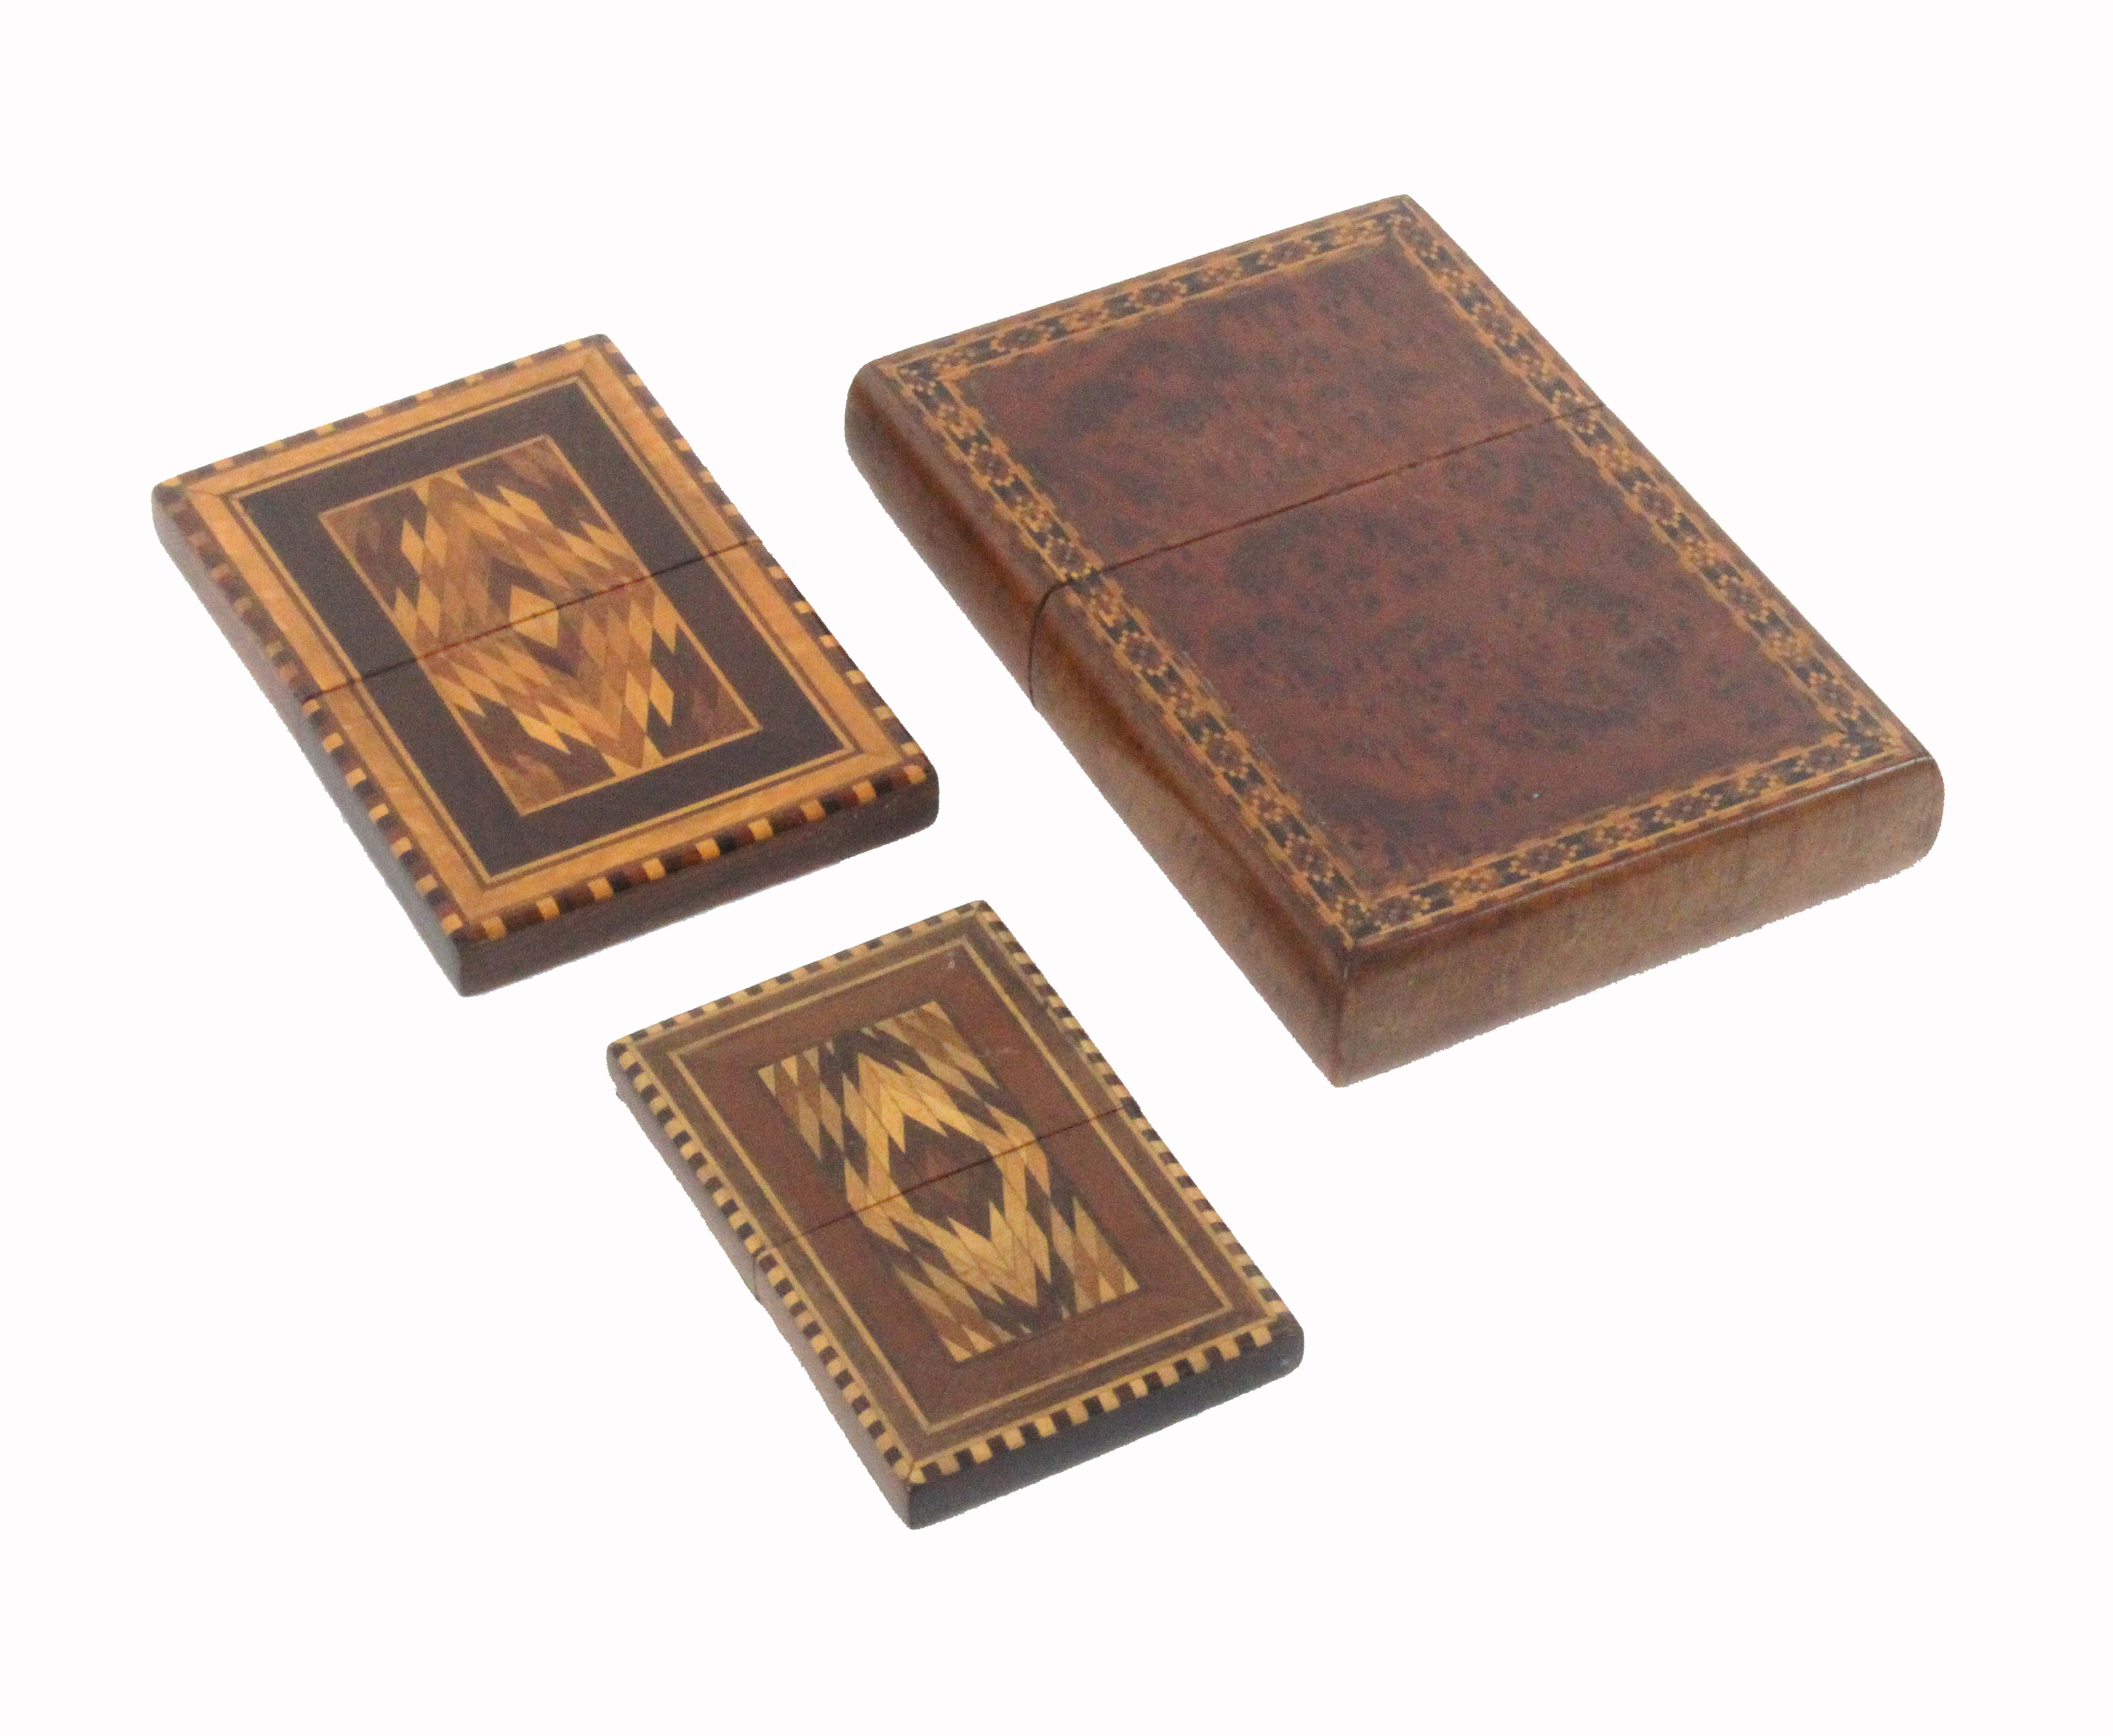 An amboyna wood and Tunbridge ware cigar case, of rectangular form with pull off lid, one side